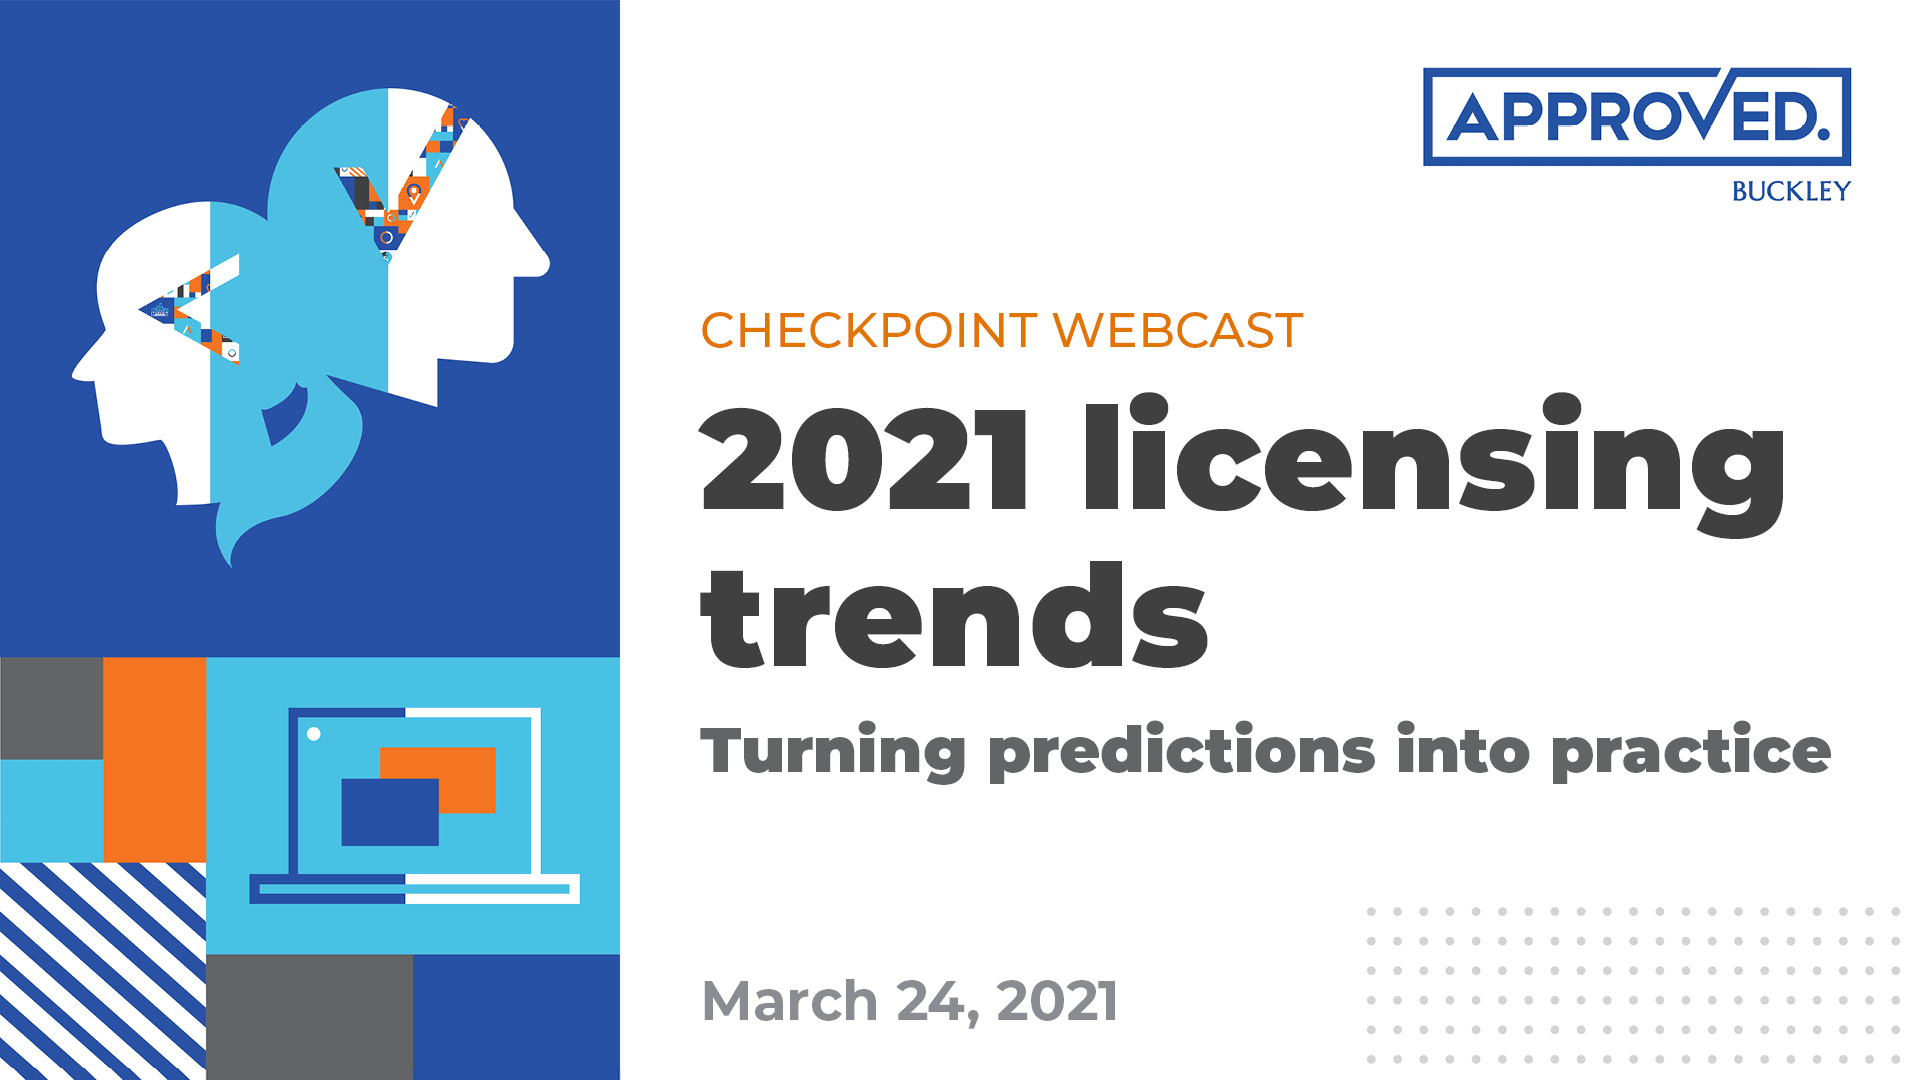 Checkpoint Webcast: 2021 Licensing Trends